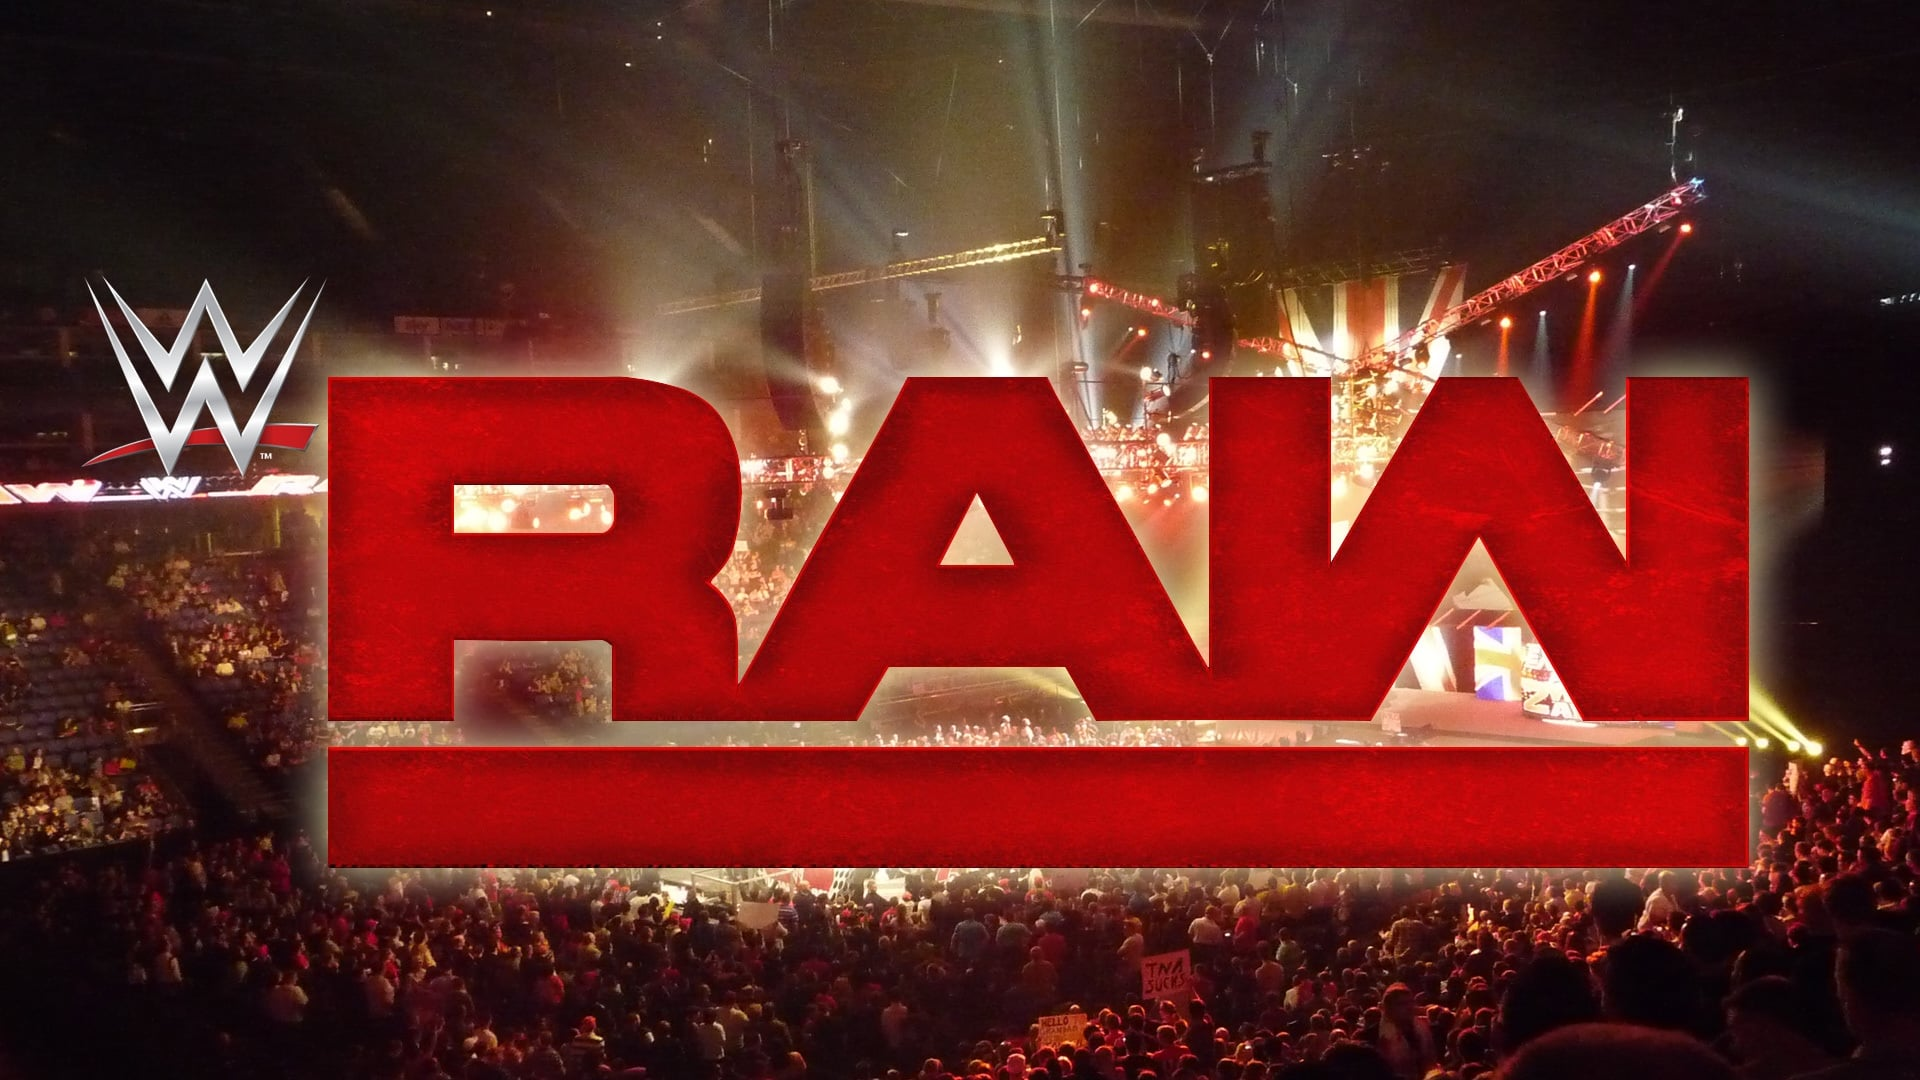 WWE Raw - Season 22 Episode 12 : March 24, 2014 (Brooklyn, NY)